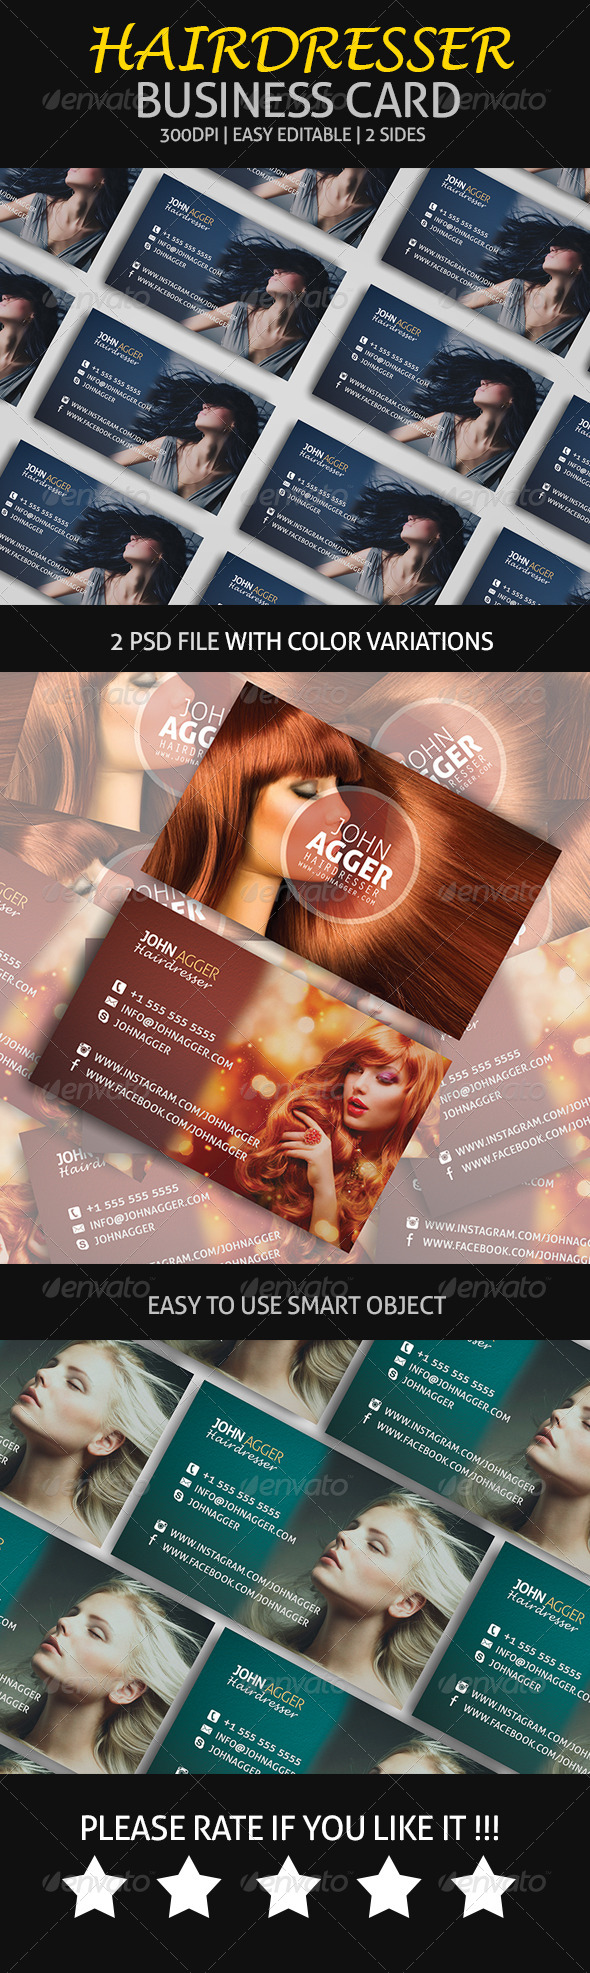 Hairdresser - Business Card - Industry Specific Business Cards